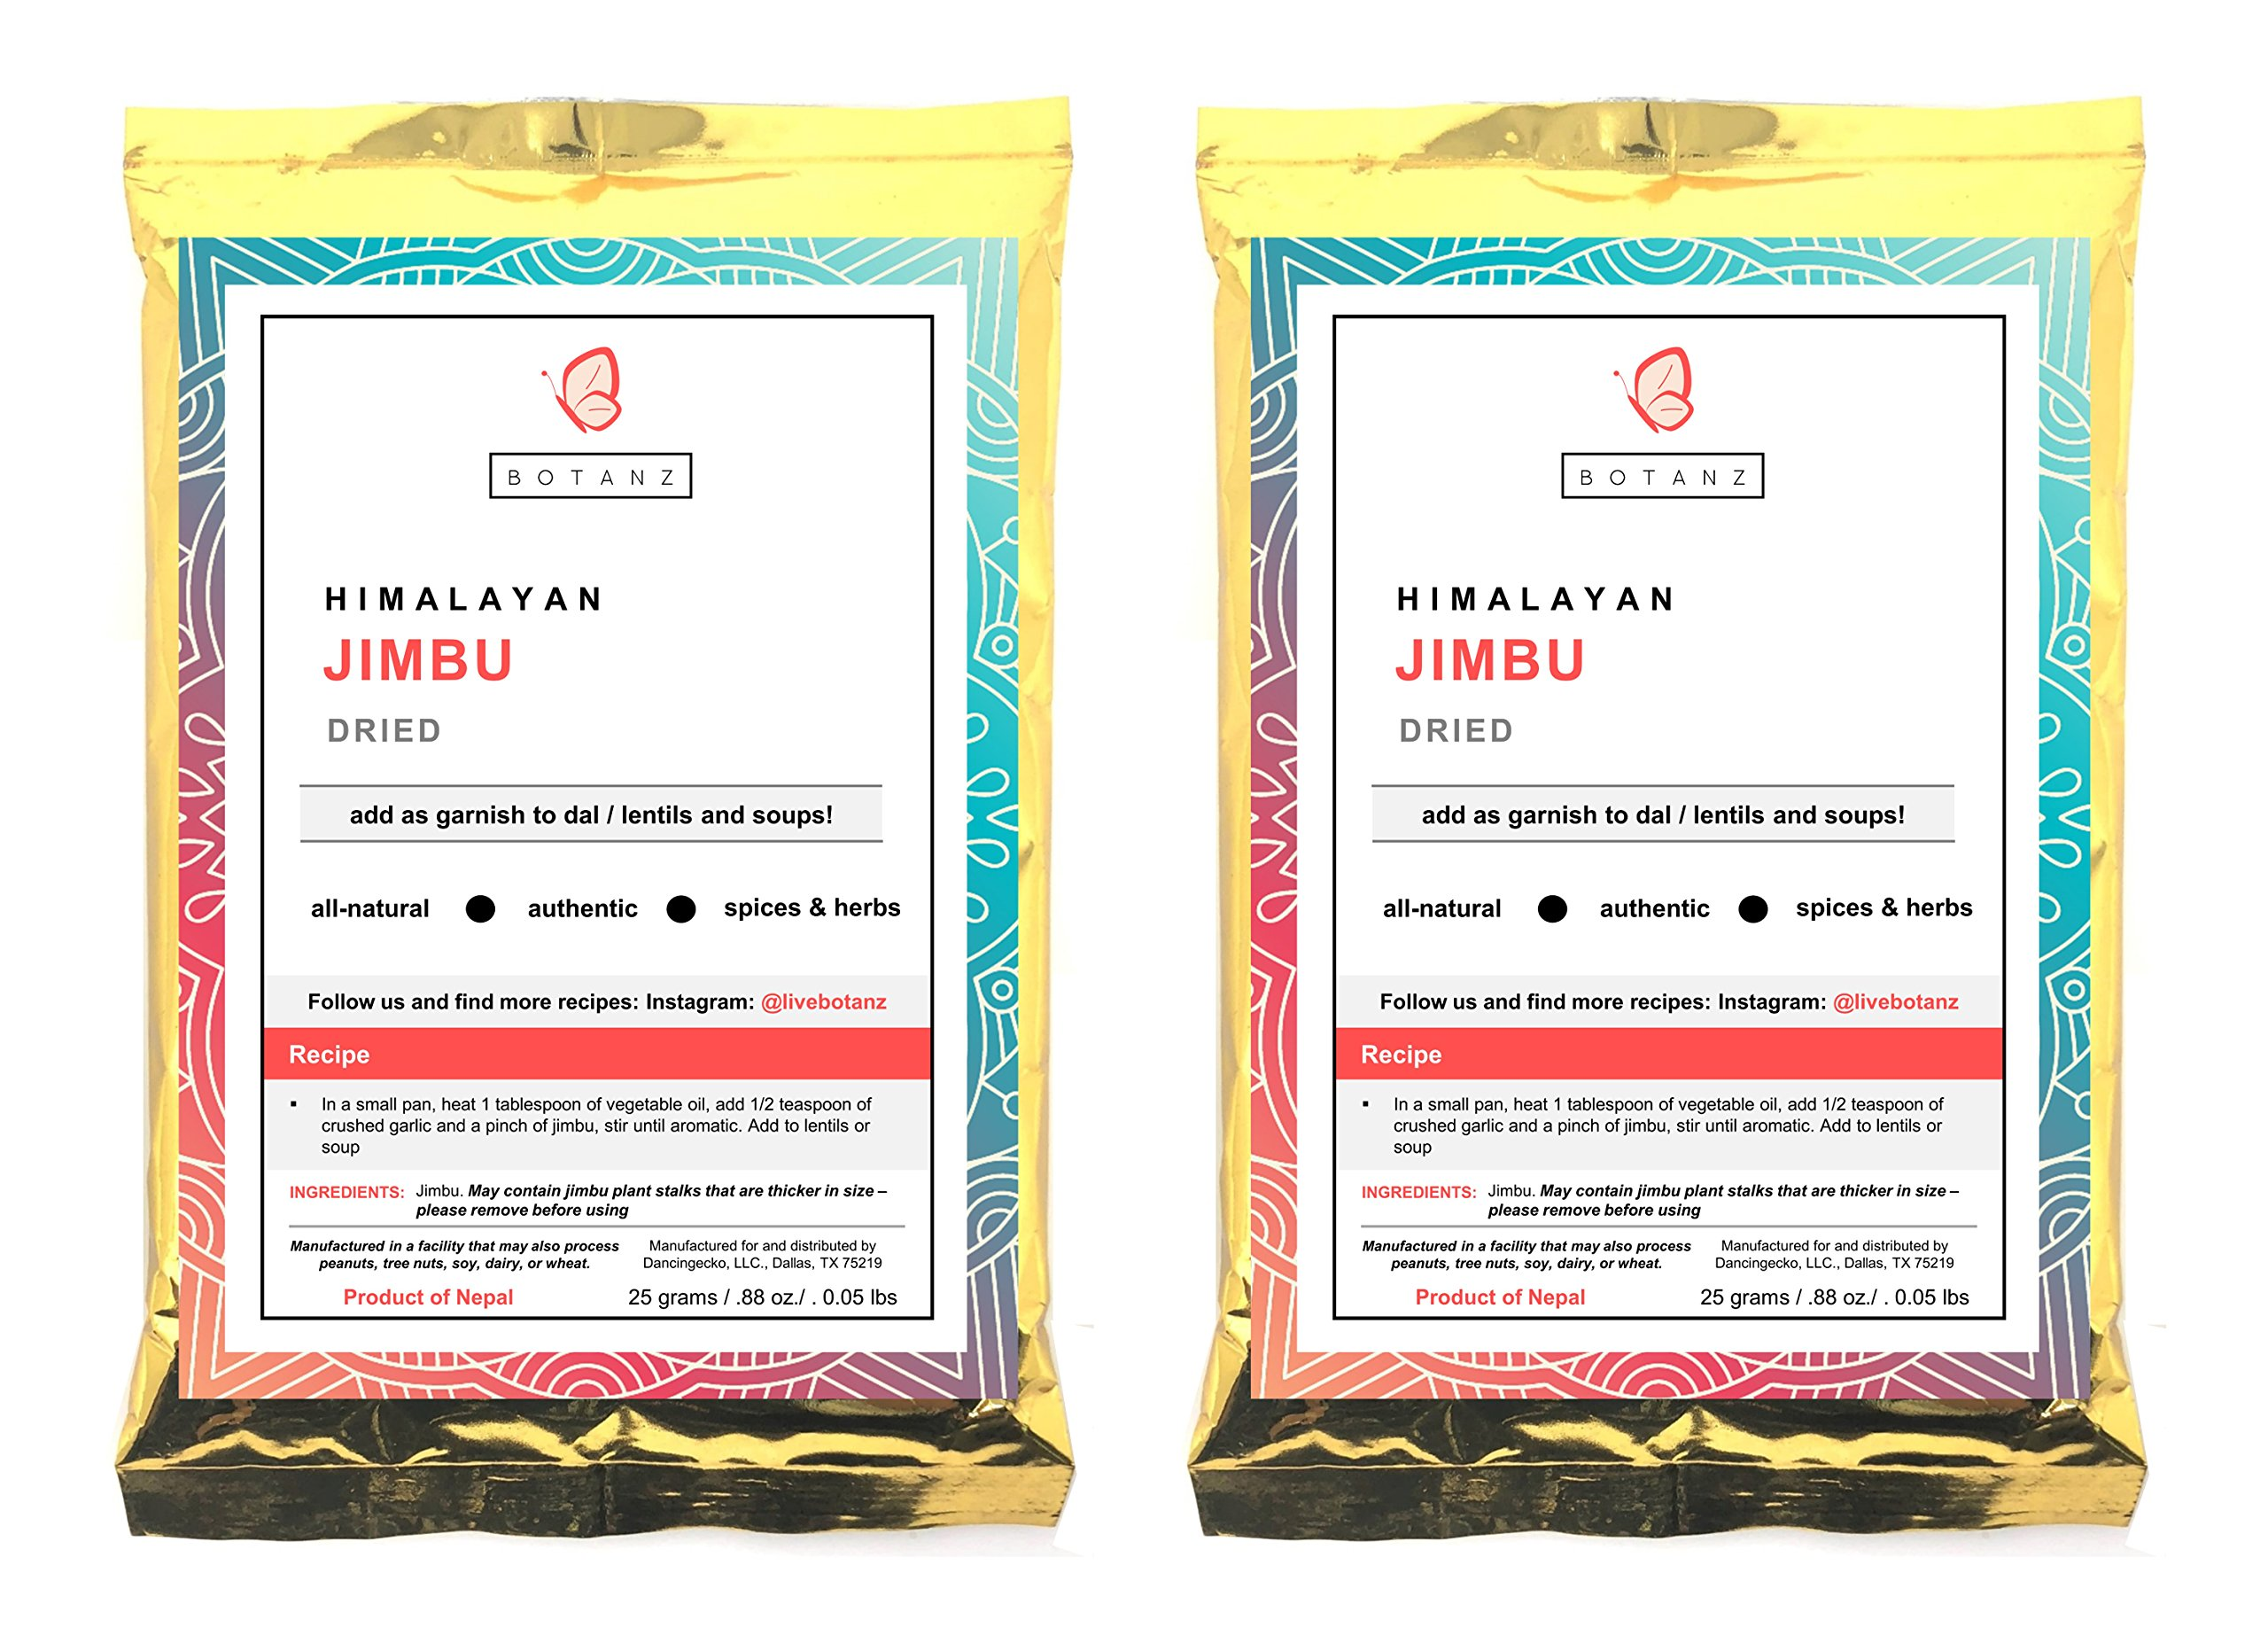 Botanz Himalayan Spice: 2 Pack Dried Jimbu (50 Grams/1.76 Ounces)